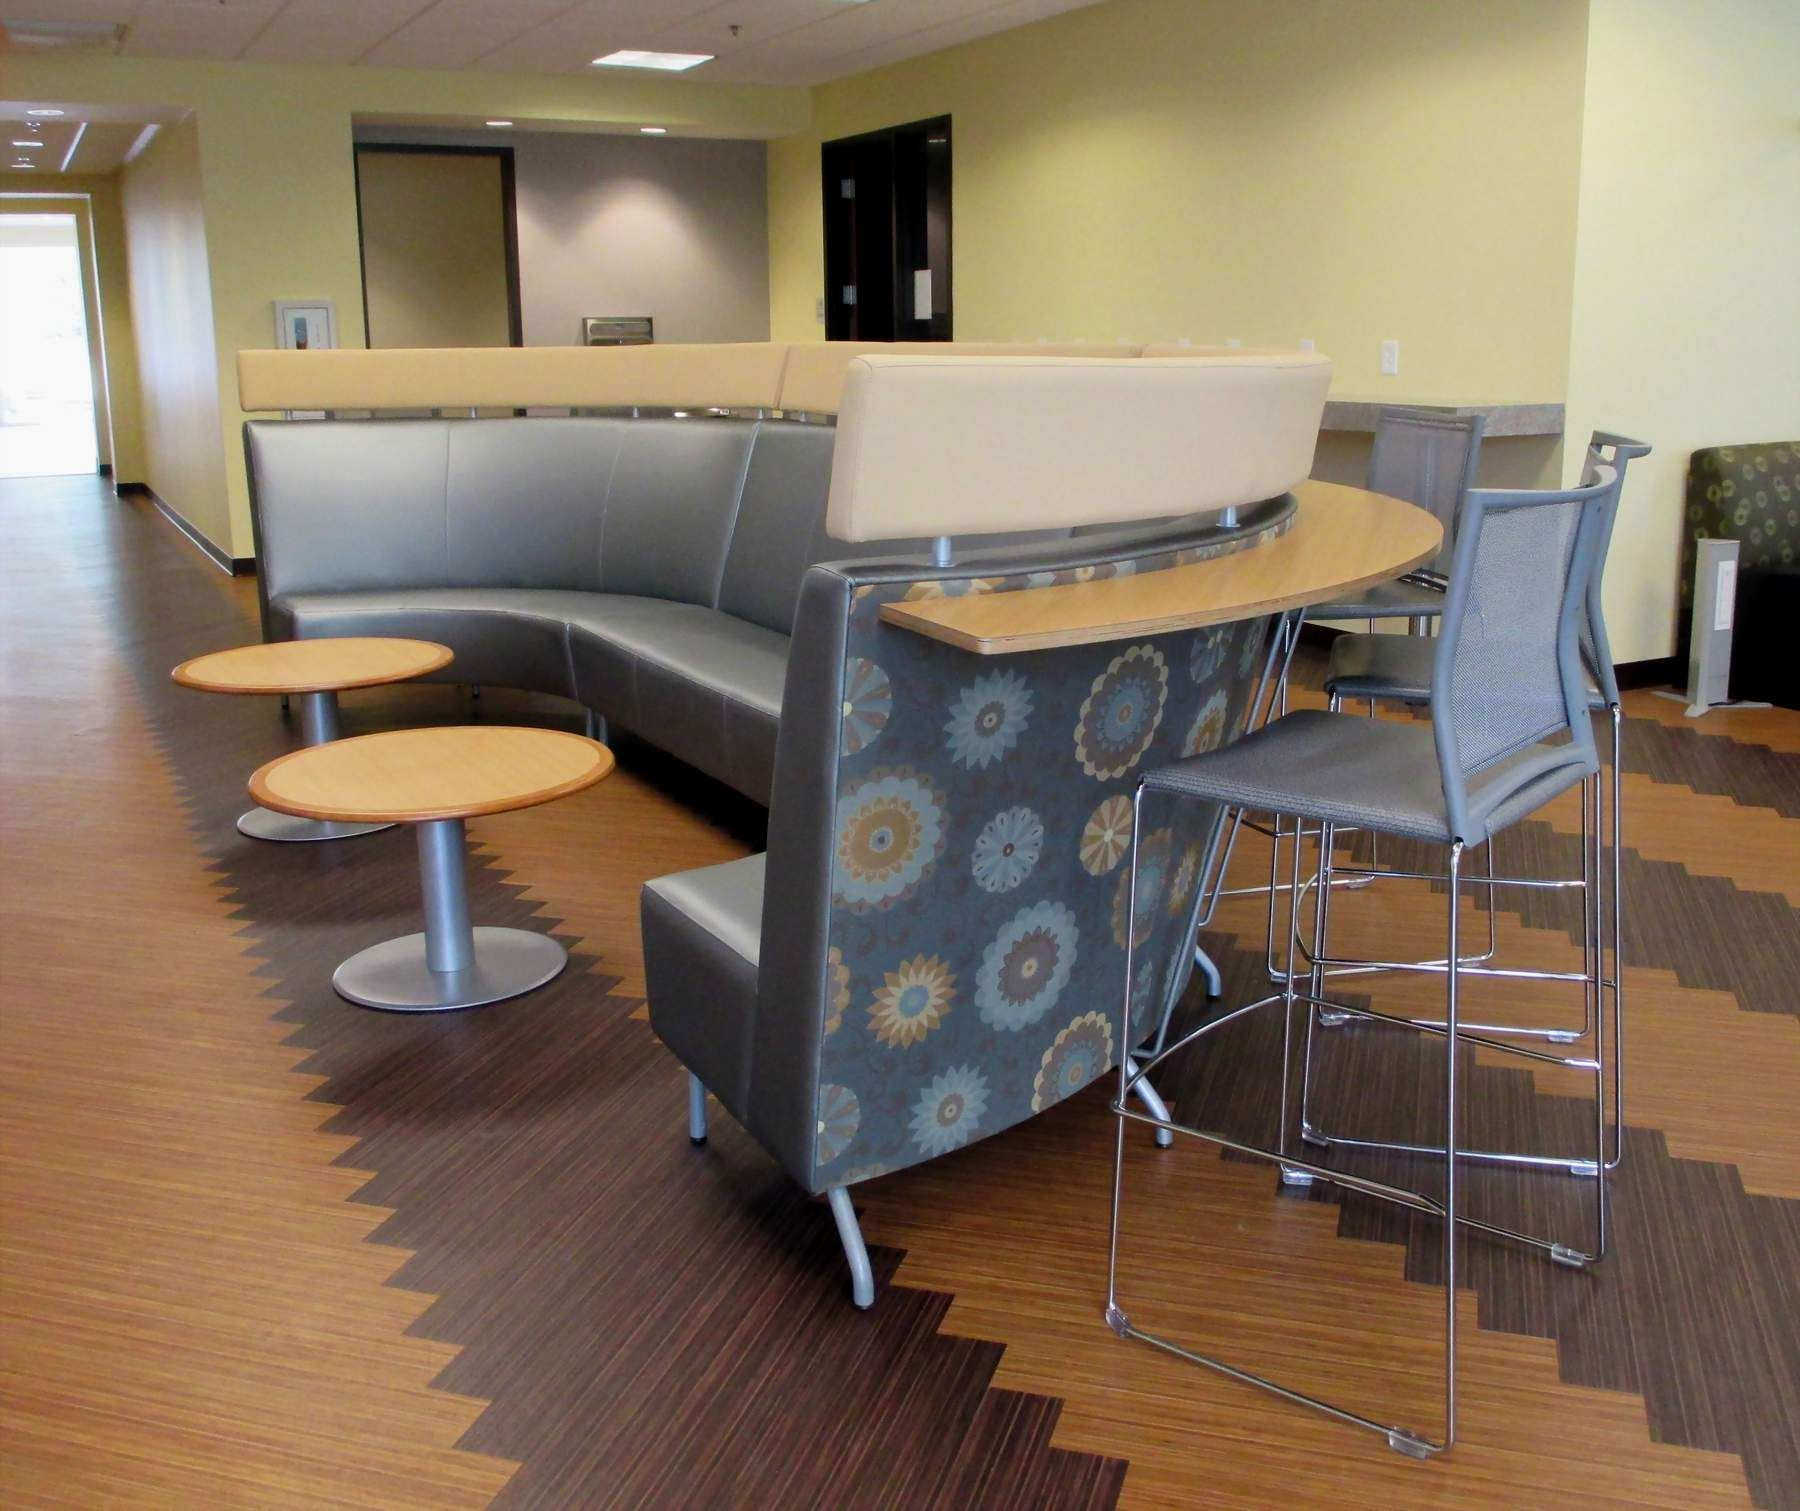 City of Charleston- Neat high back sofa with ledge for stools behind - Herald Office Solutions Columbia, SC Charleston, SC Dillon, SC Myrtle Beach, SC Cheraw, SC Sumter, SC Greenwood, SC Sumter, SC Whiteville, NC